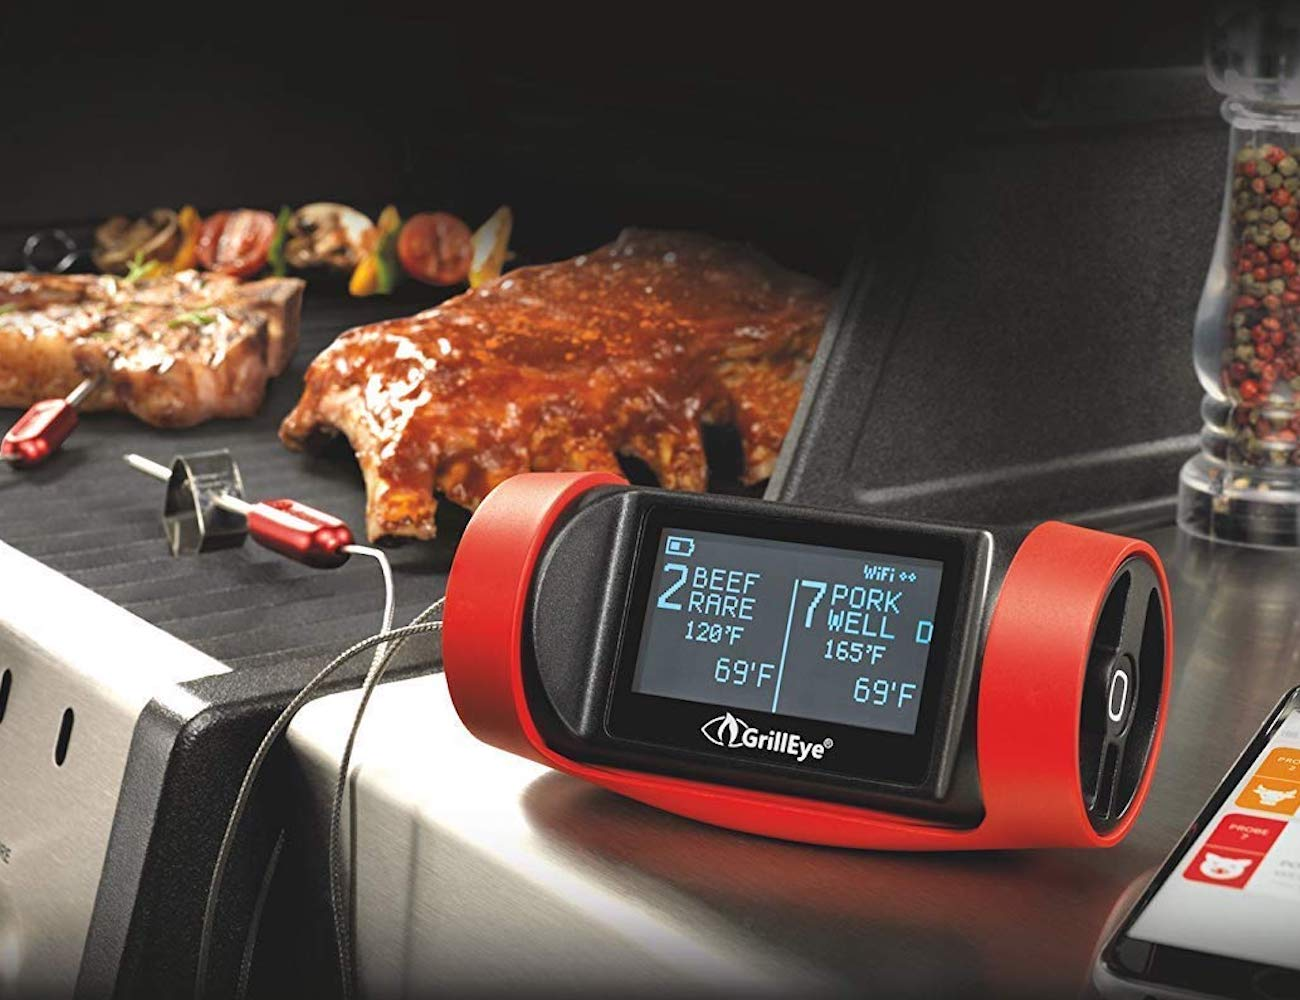 GrillEye PRO+ Grilling and Smoking Thermometer